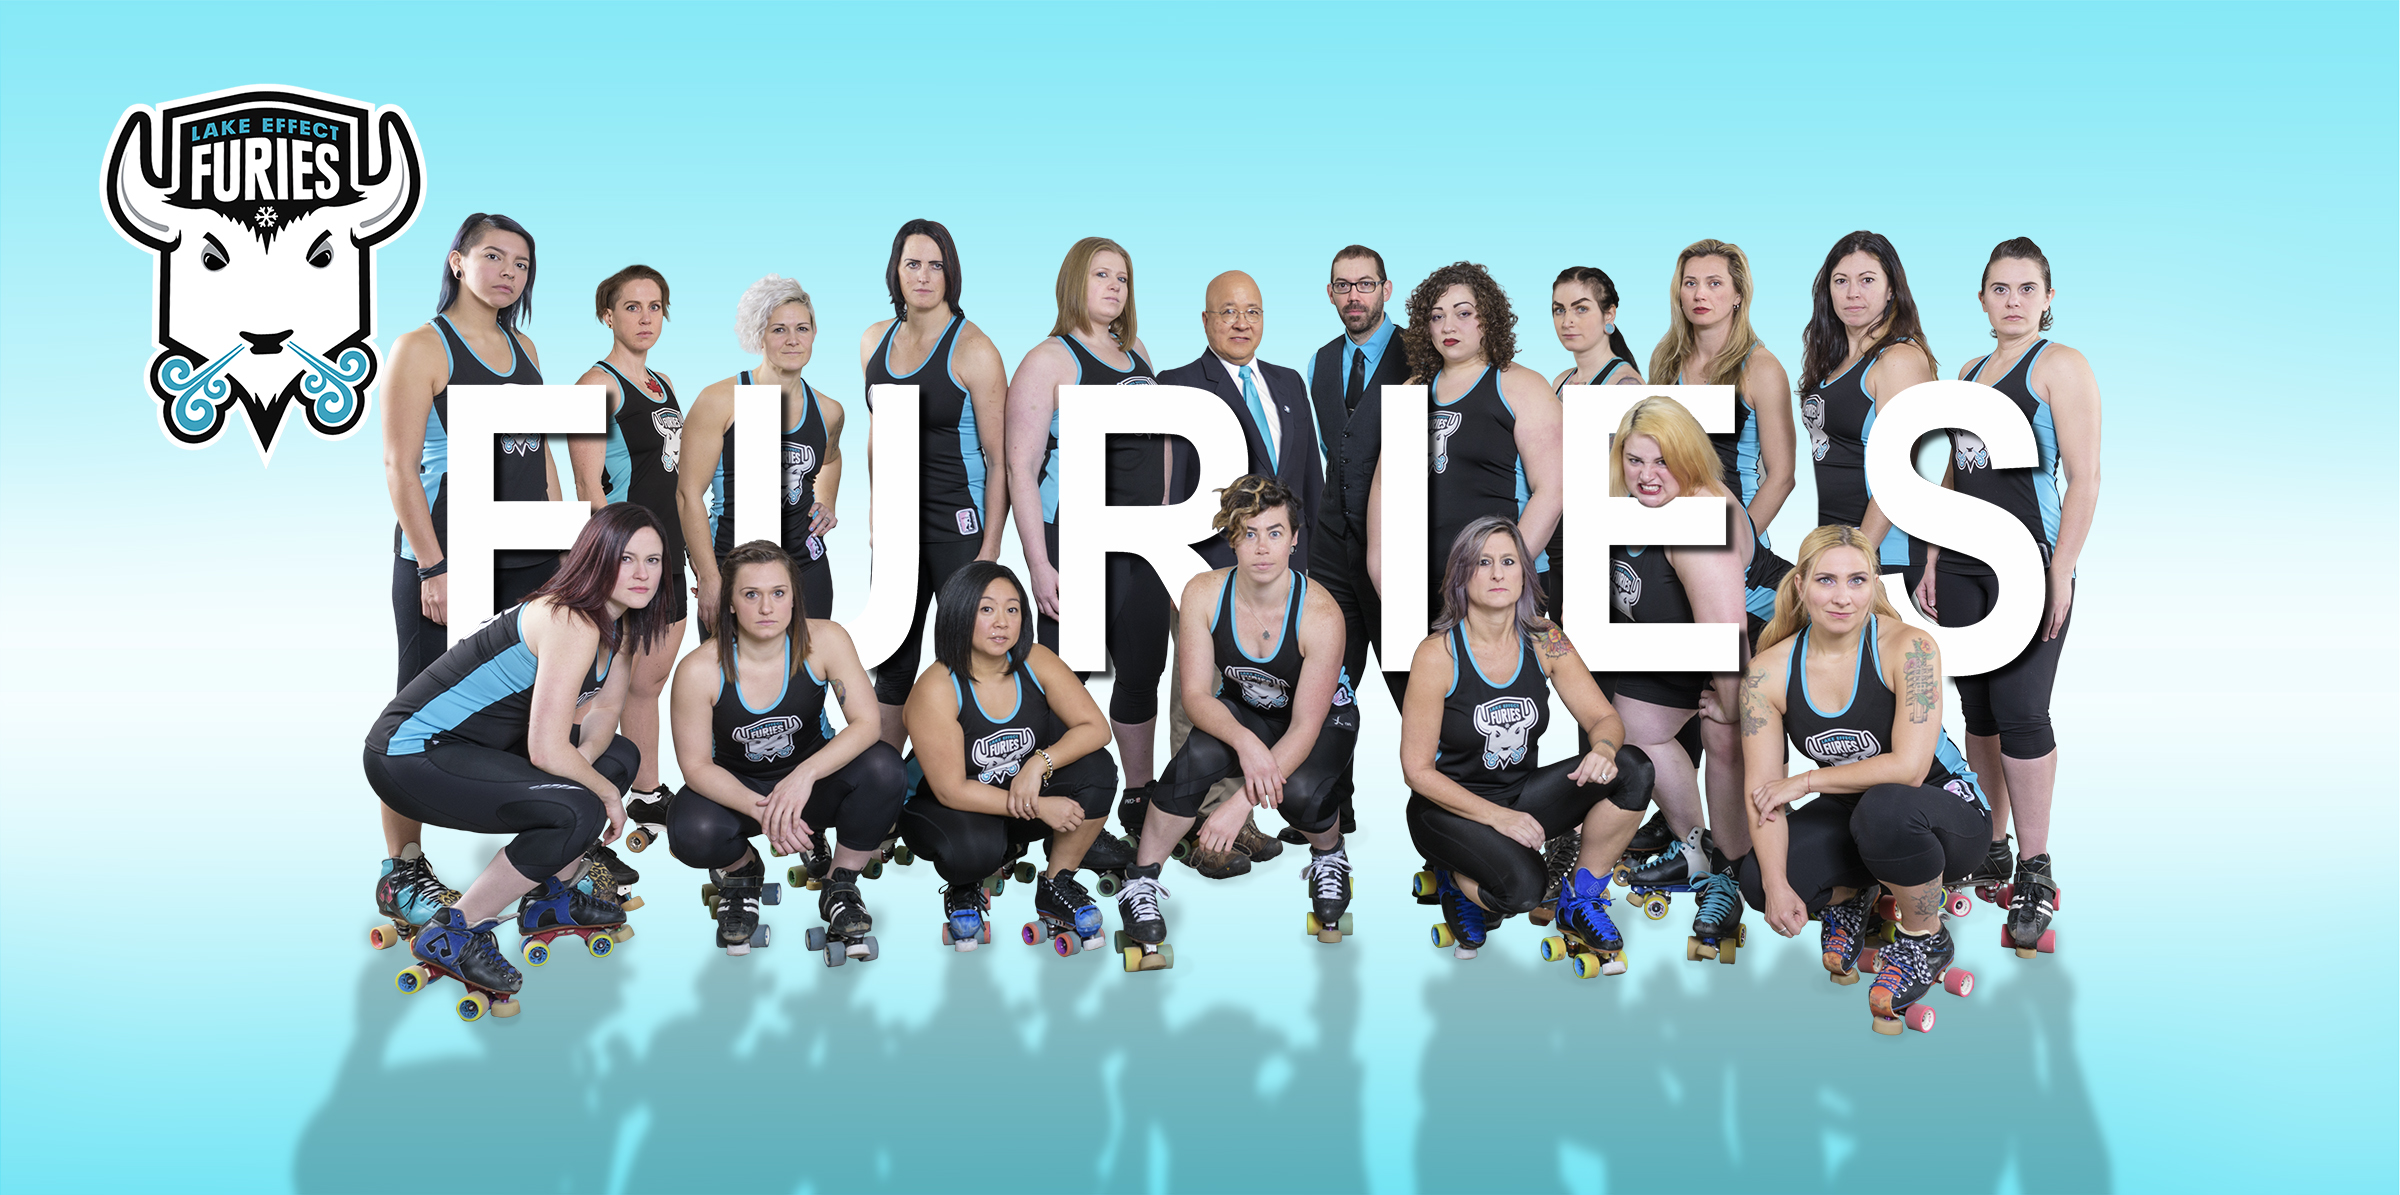 Roller skating quebec city - Formed In 2008 As The Queen City Roller Girls All Stars Our Travel Team The Lake Effect Furies Plays In Games Sanctioned By The Women S Flat Track Derby